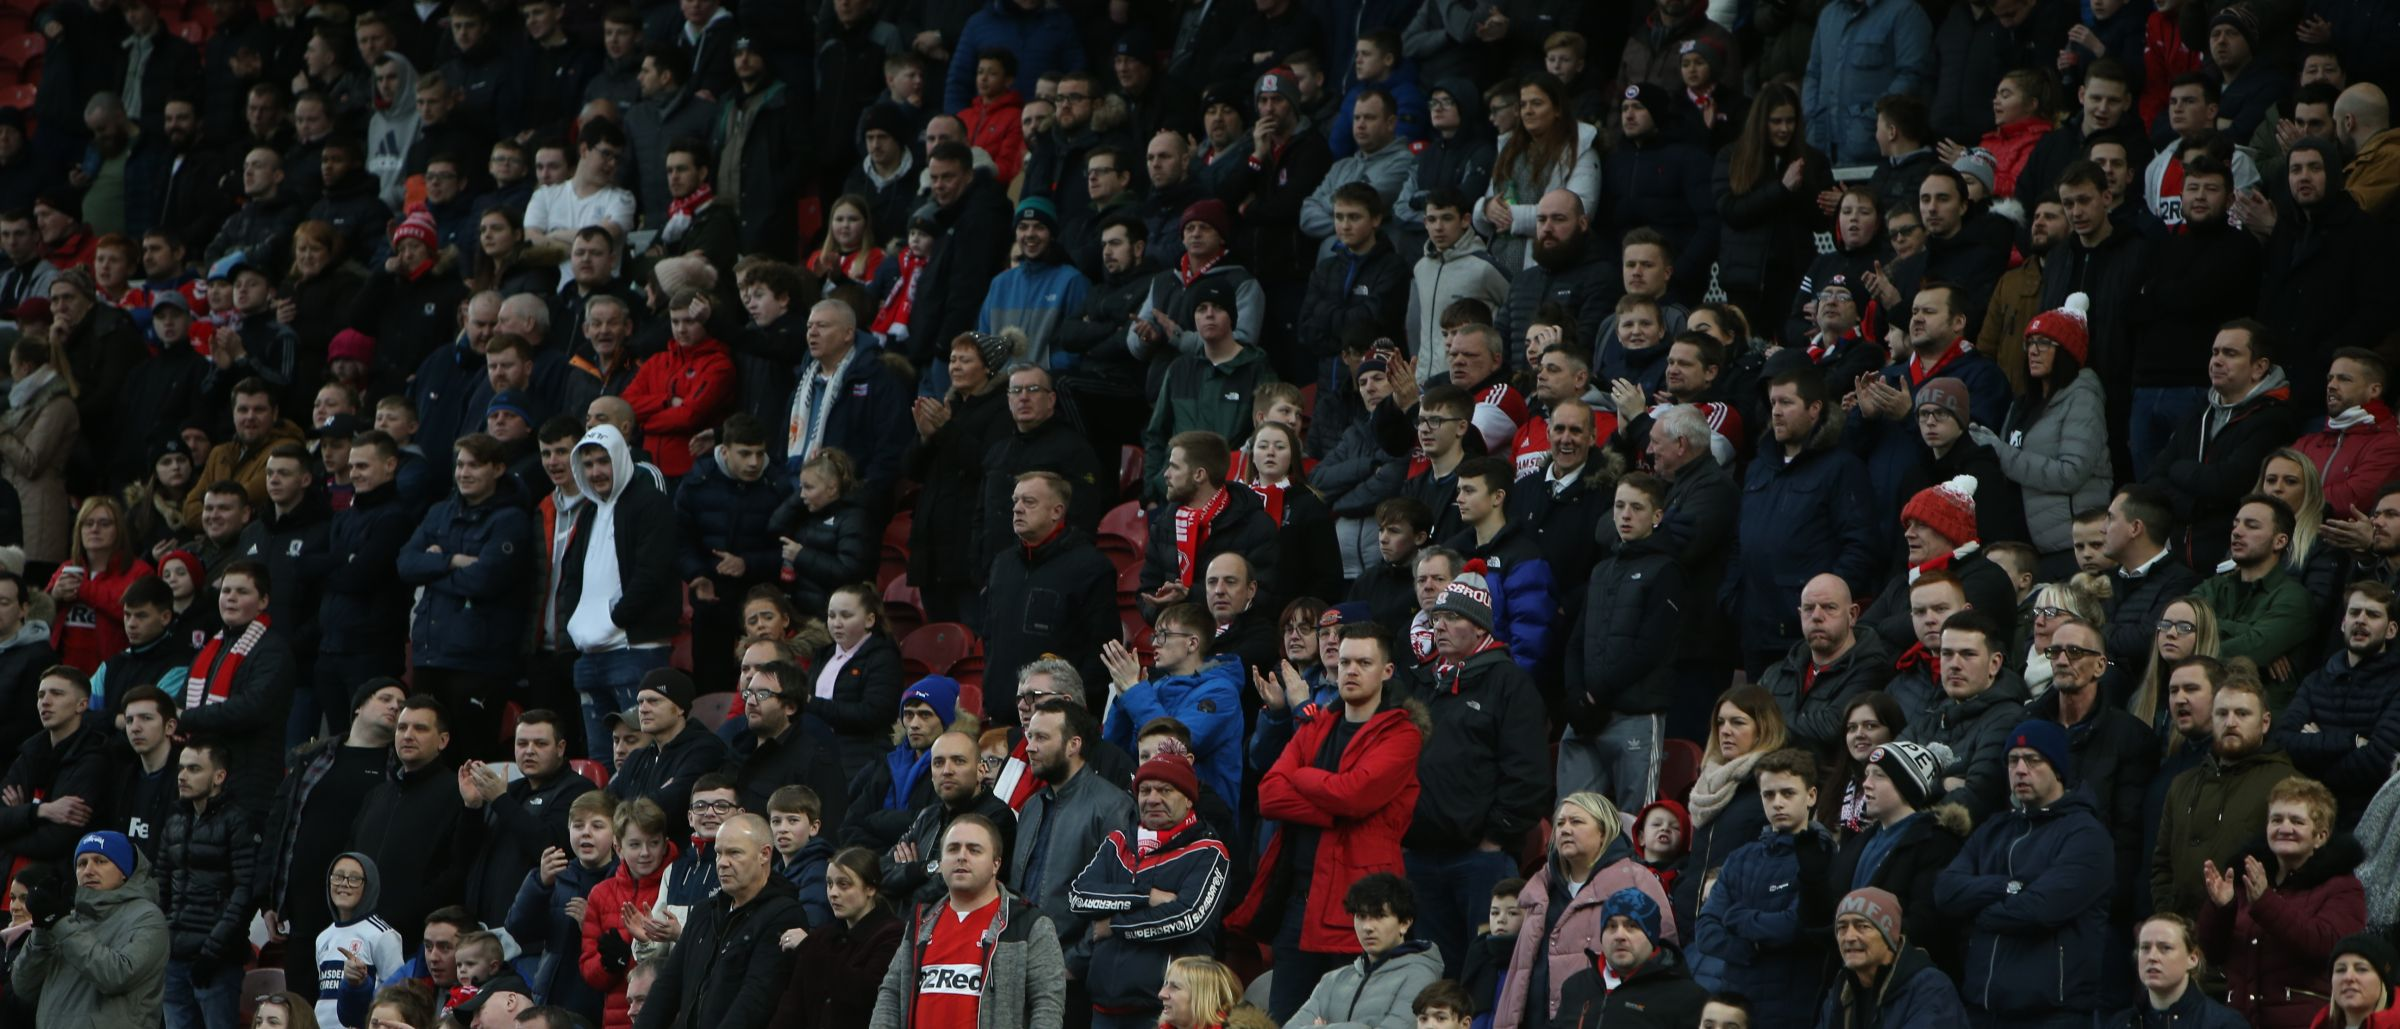 Boro fans take their seats for this FA Cup 4th round tie against Newport County